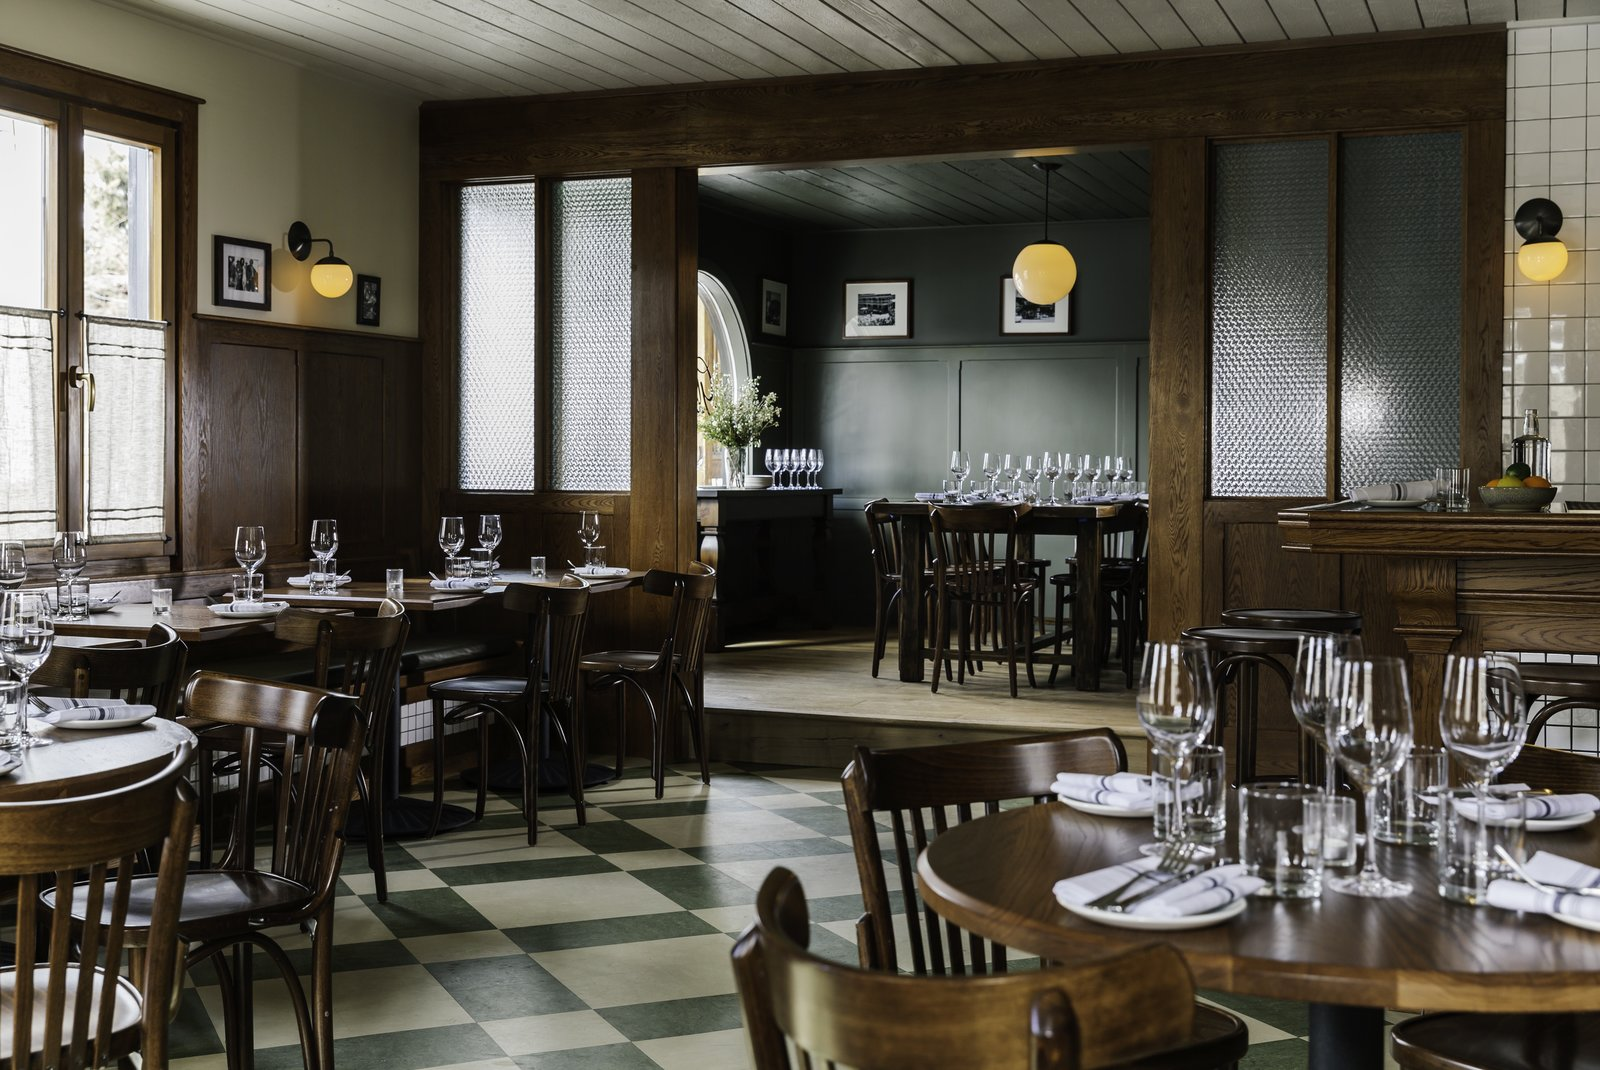 Dining Room, Chair, Pendant Lighting, Wall Lighting, Stools, Table, and Bar  Photo 9 of 12 in Classic West Meets Contemporary Cool at the Anvil Hotel in Jackson, Wyoming